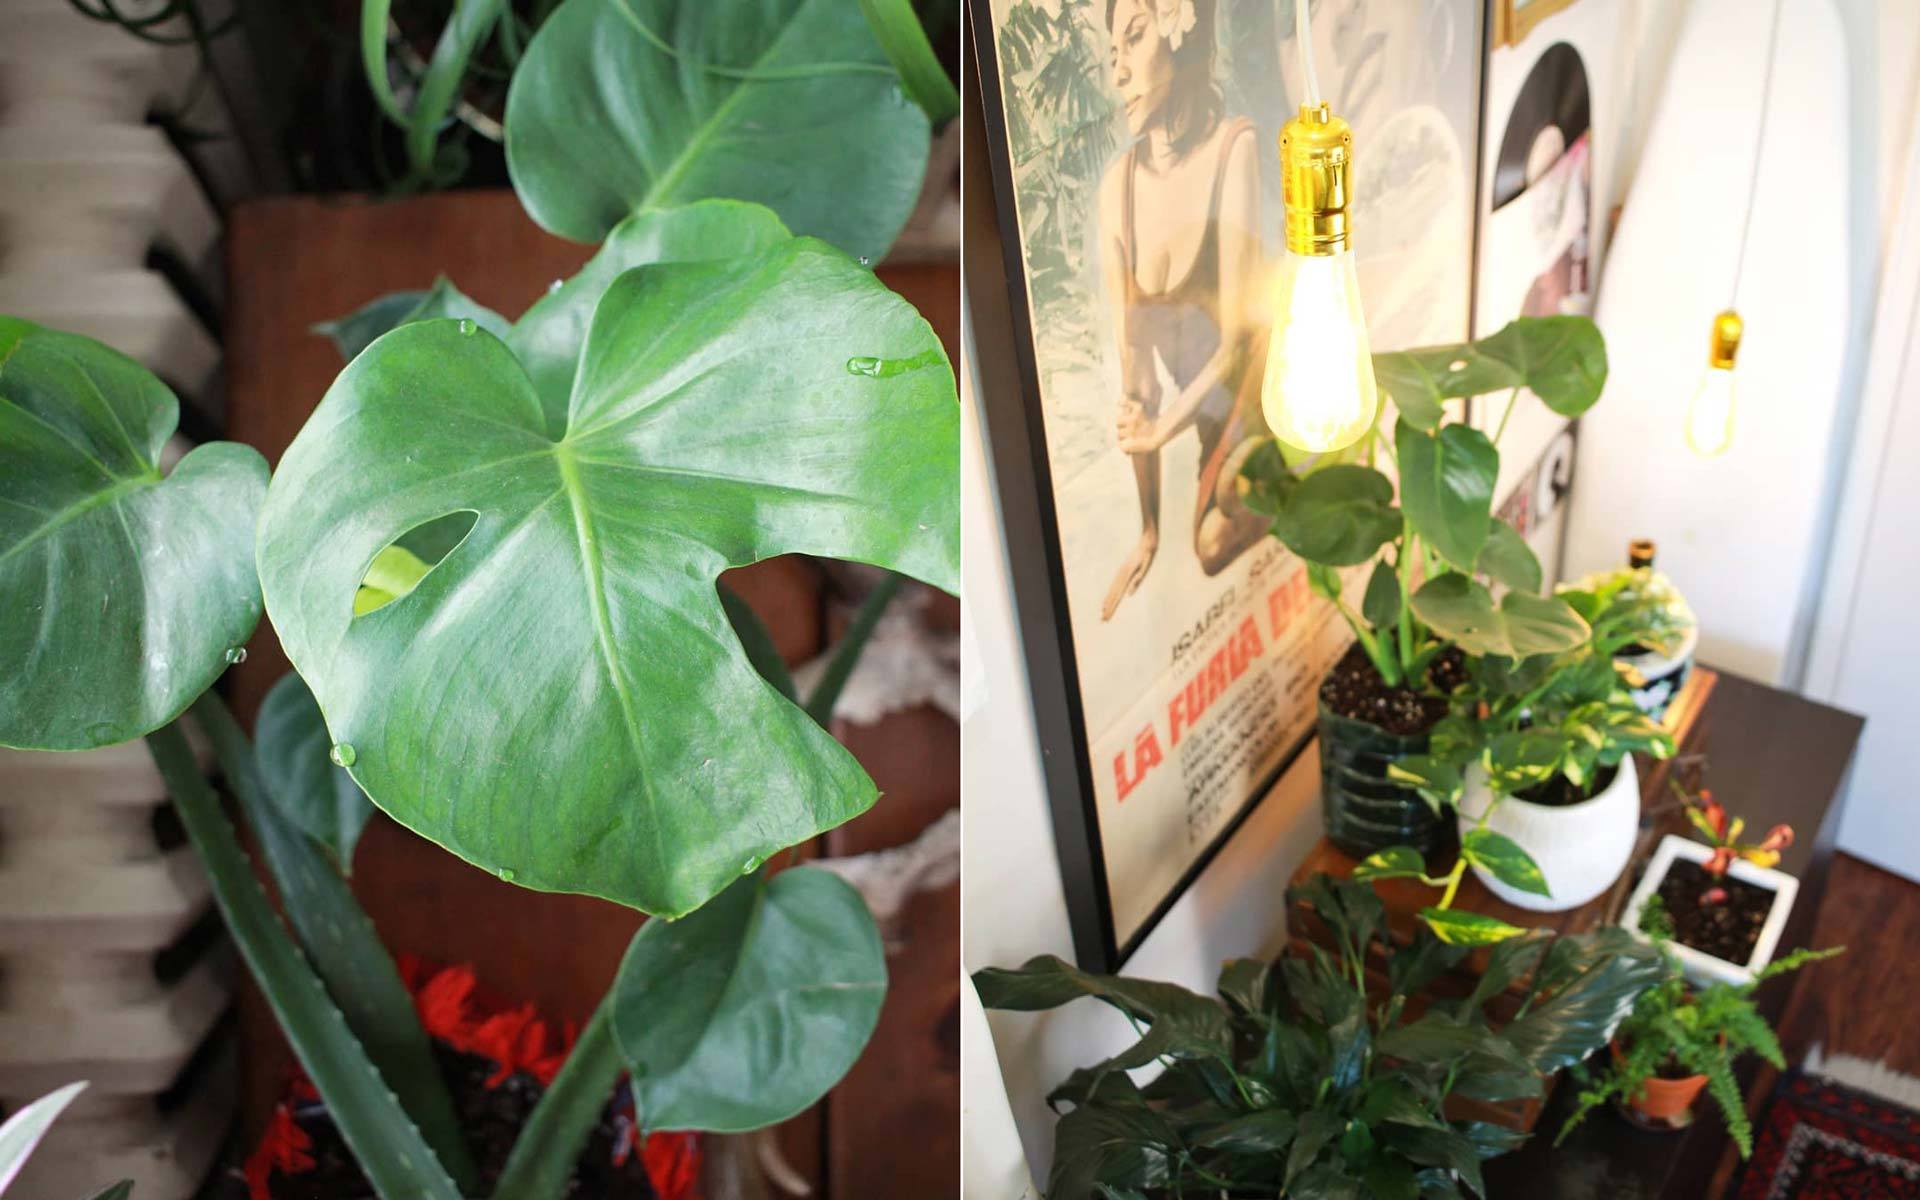 Monstera plant and decorative light with other plants